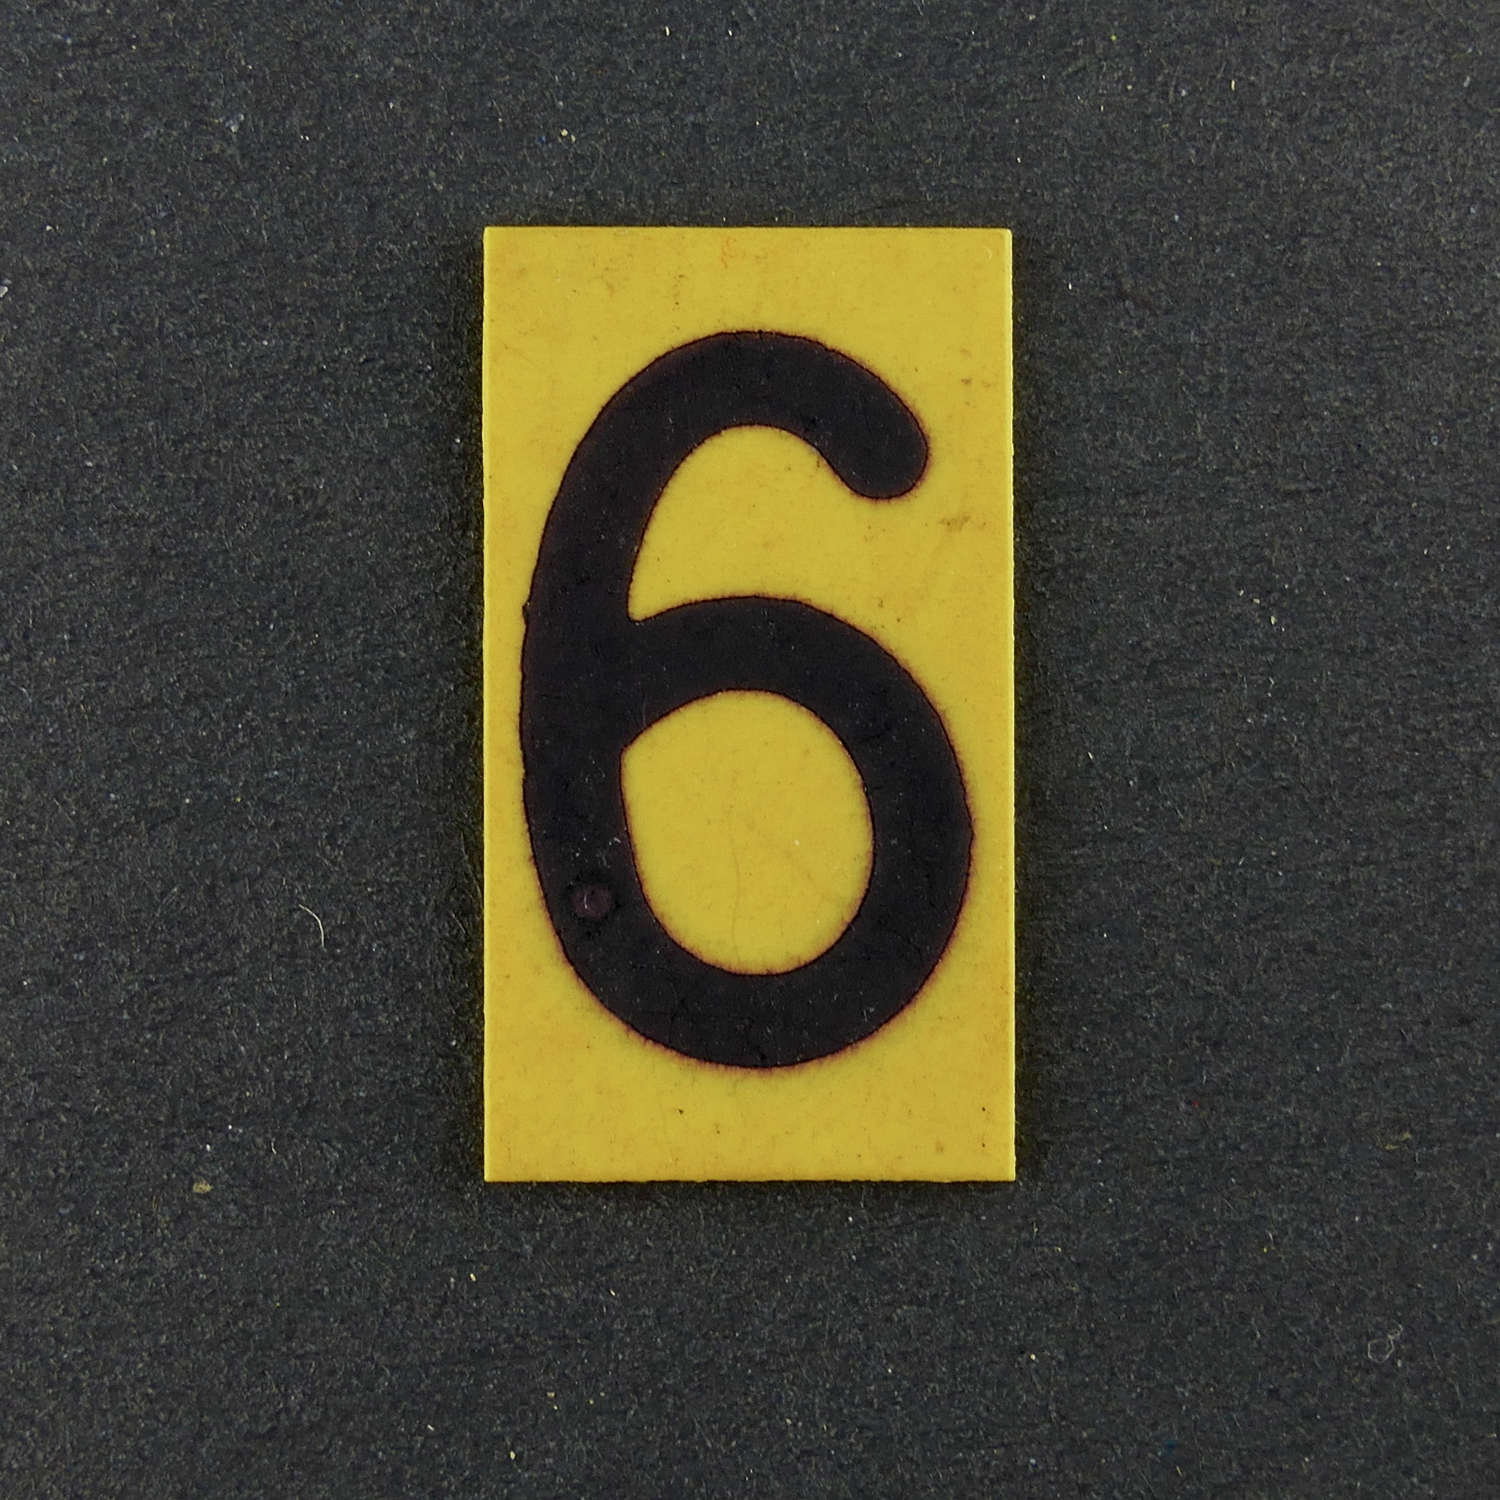 RAF operations room raid block tile, '6' / '9'